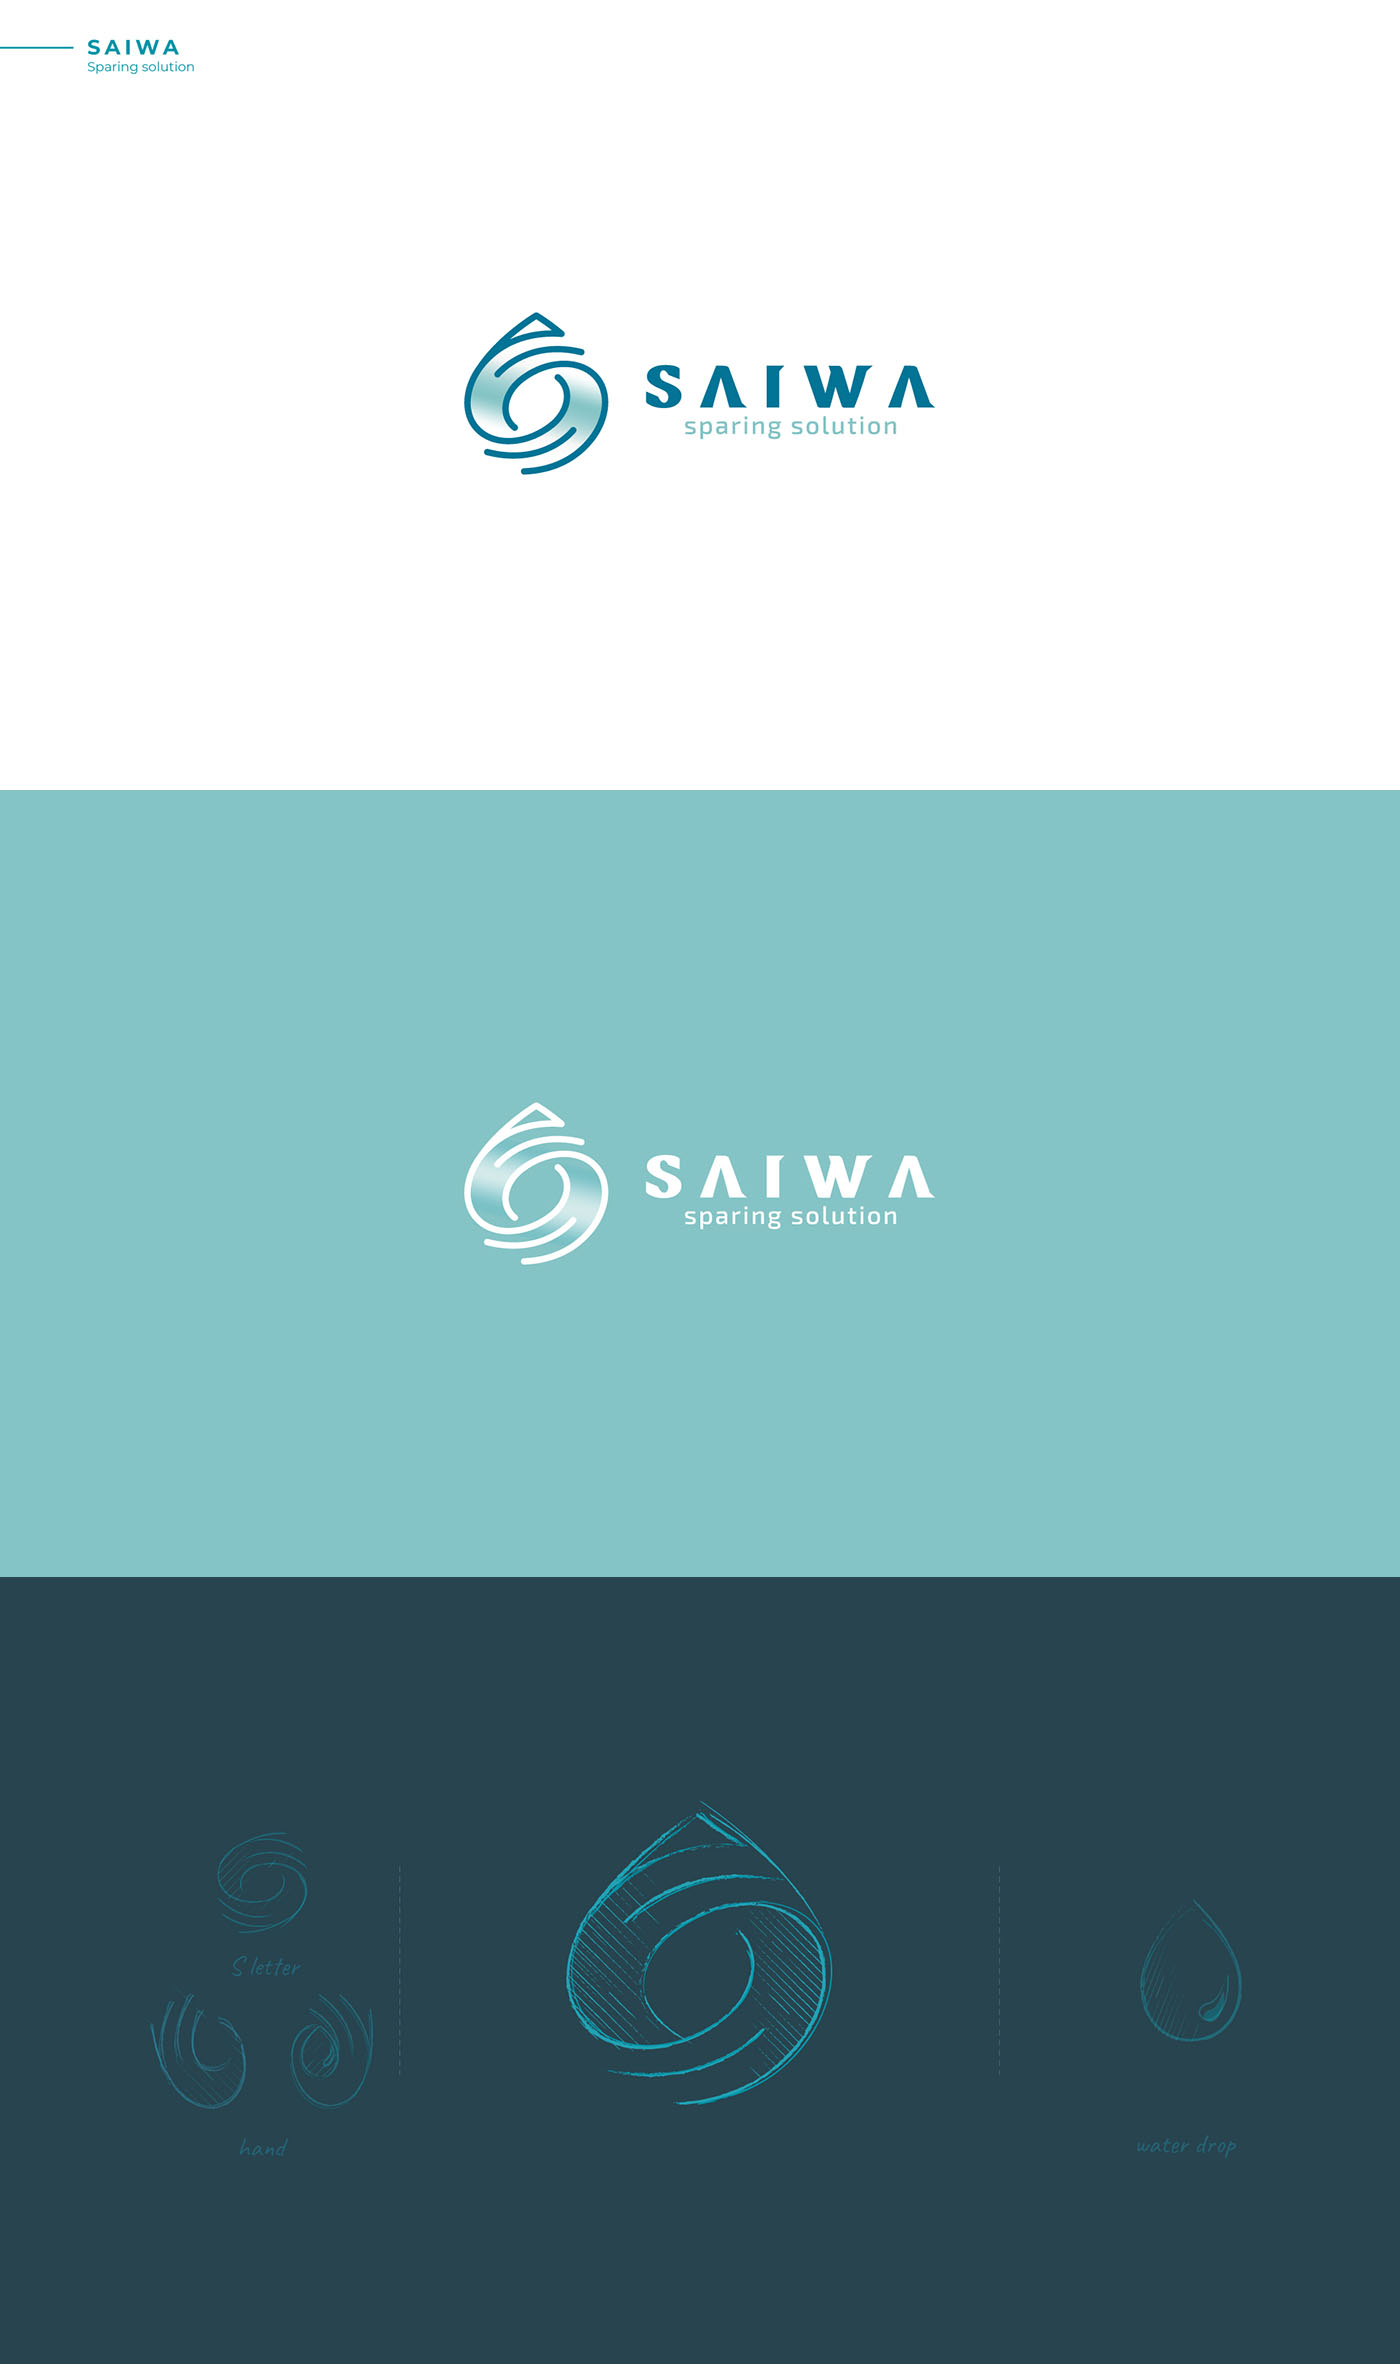 SAIWA - Drop water logo design - logofolio